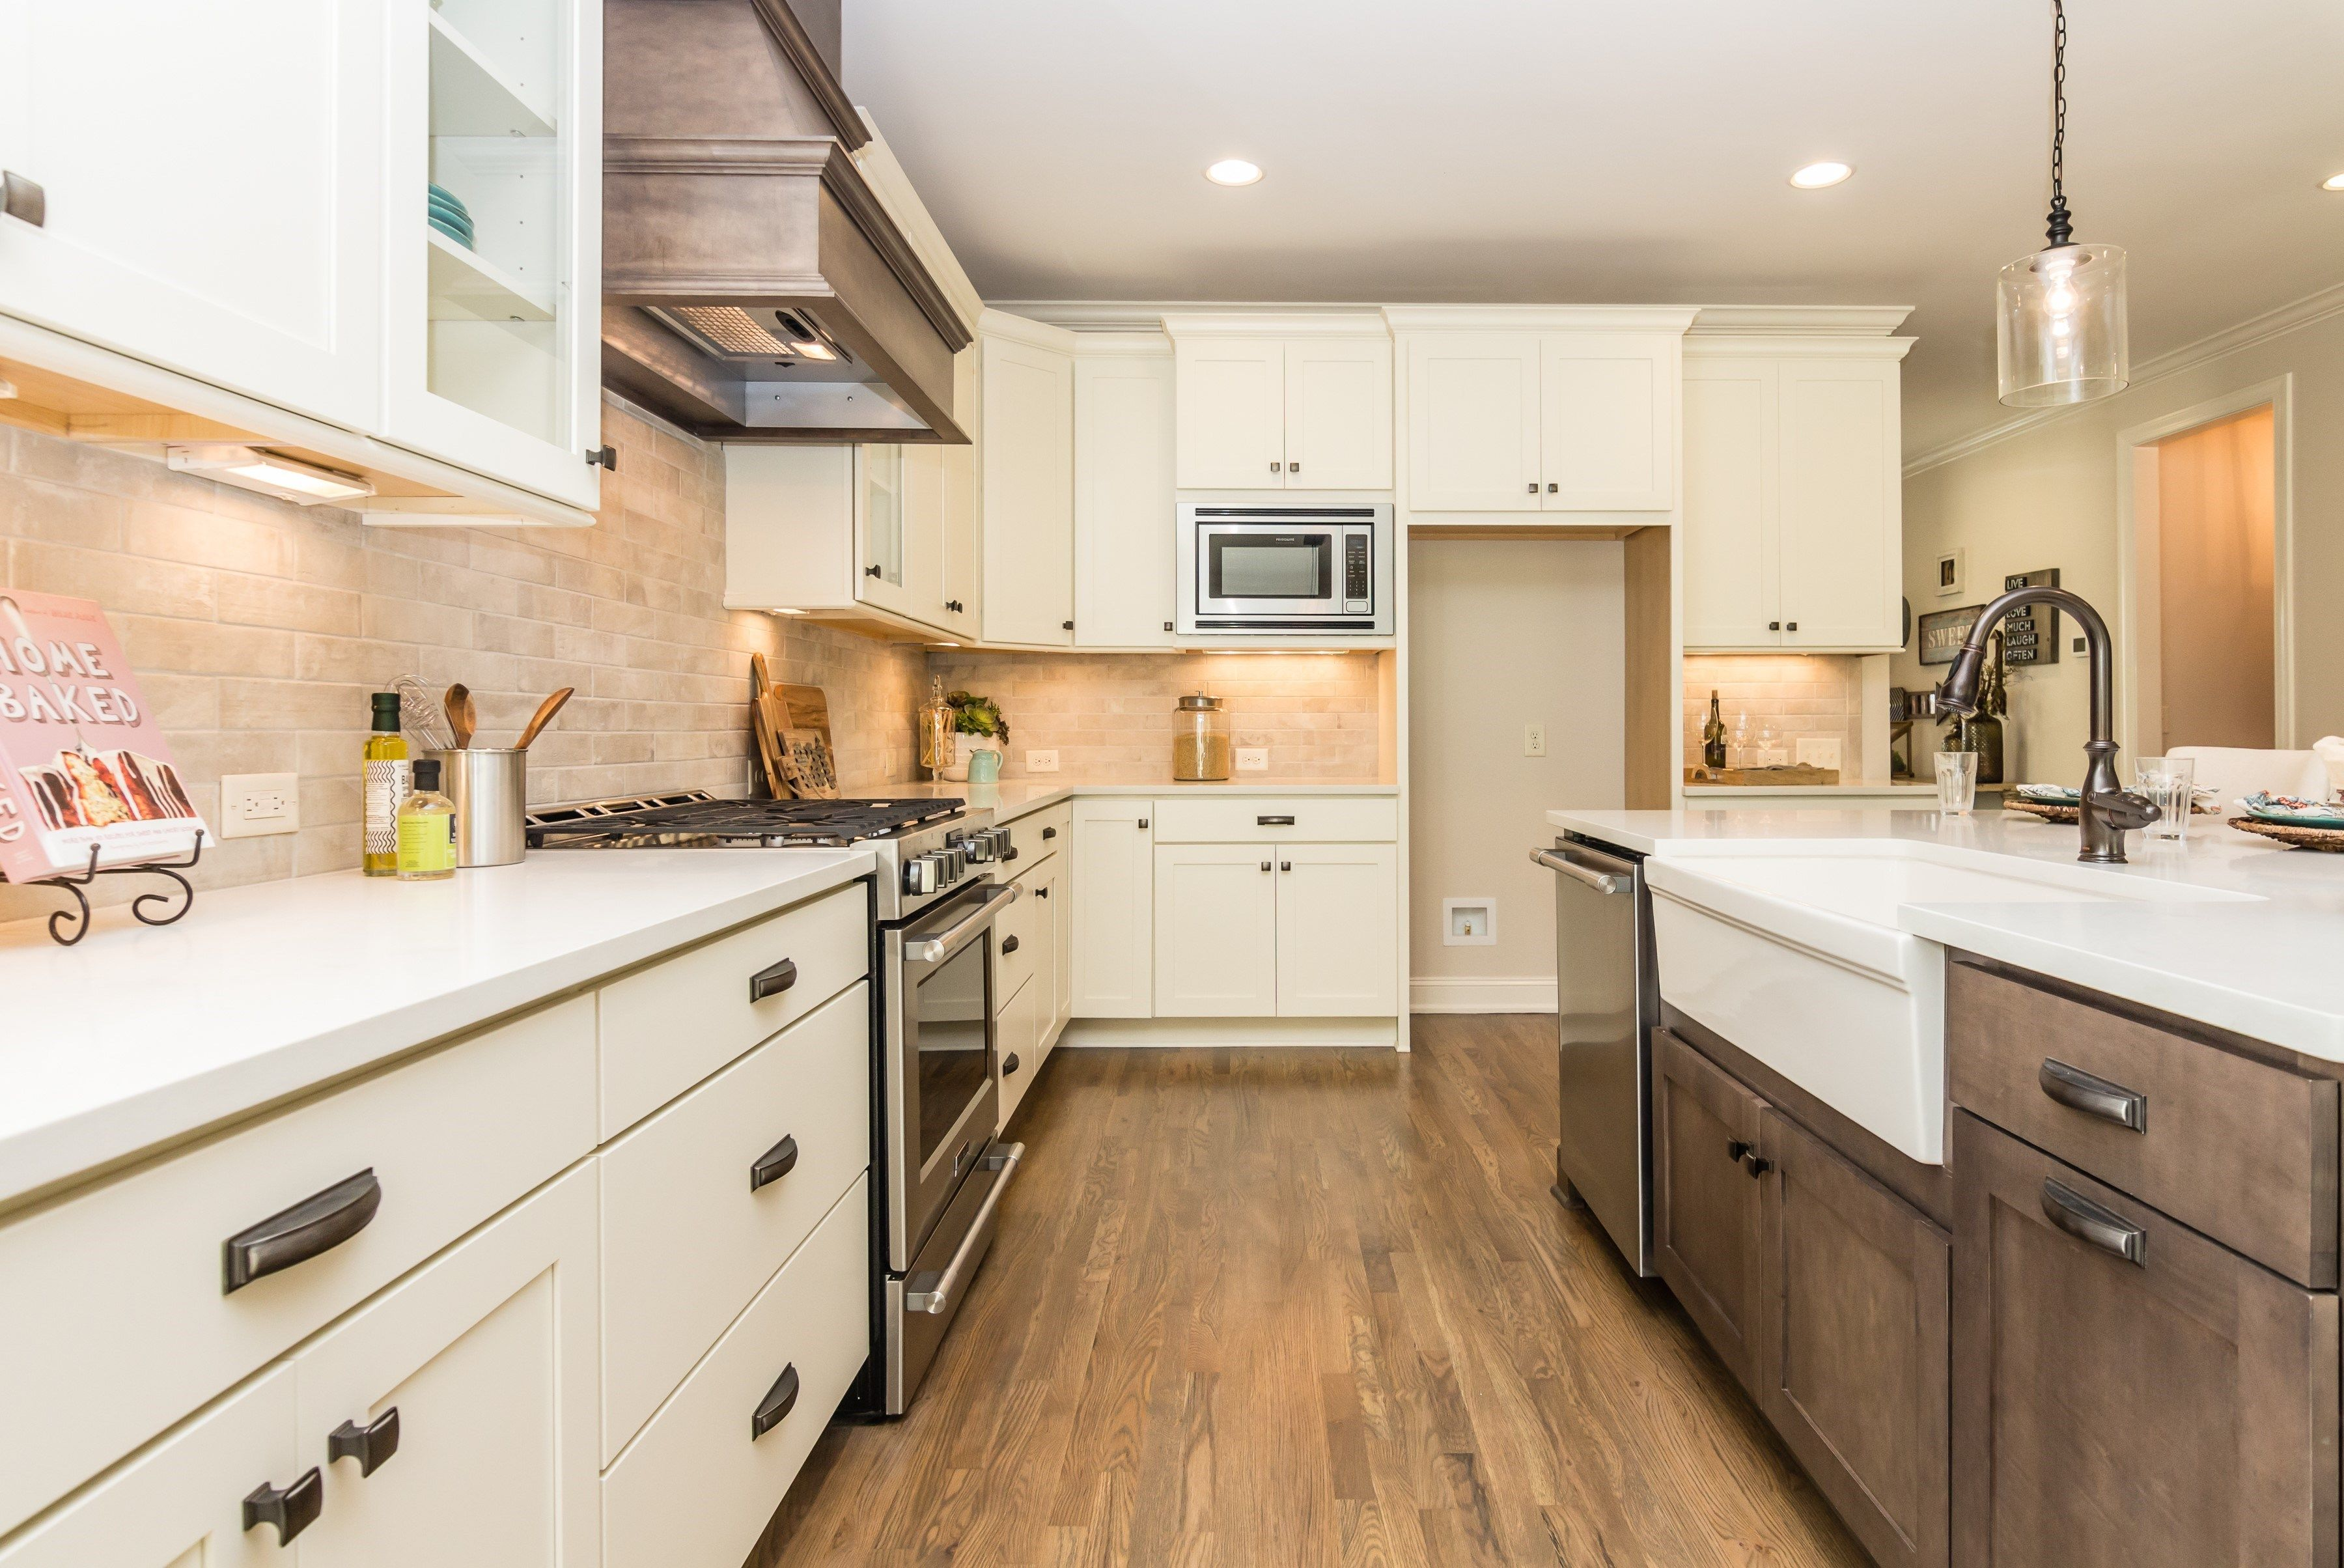 The Concord Kitchen With Farmhouse Sink Built By Homes By Dickerson In Briar Chapel Chapel Hill Nc Farmhouse Sink Kitchen Kitchen Home